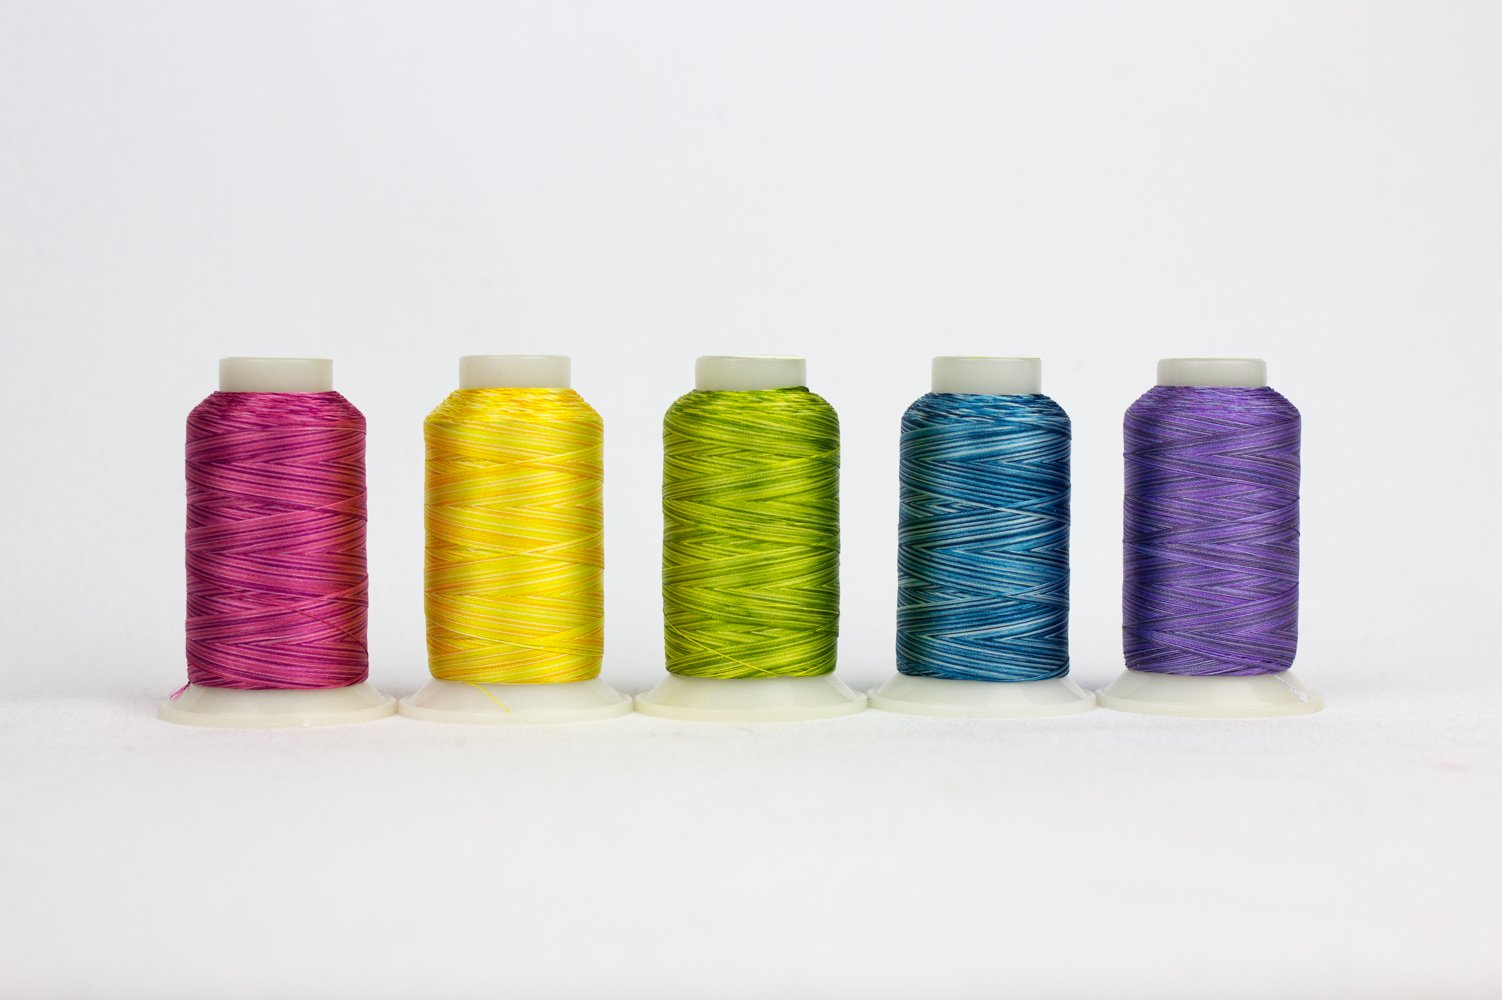 WOND-FBB TRANQUIL - FABULUX COLOR SET 5X700M (766YD) SPOOLS 8 COL TRANQUILITY